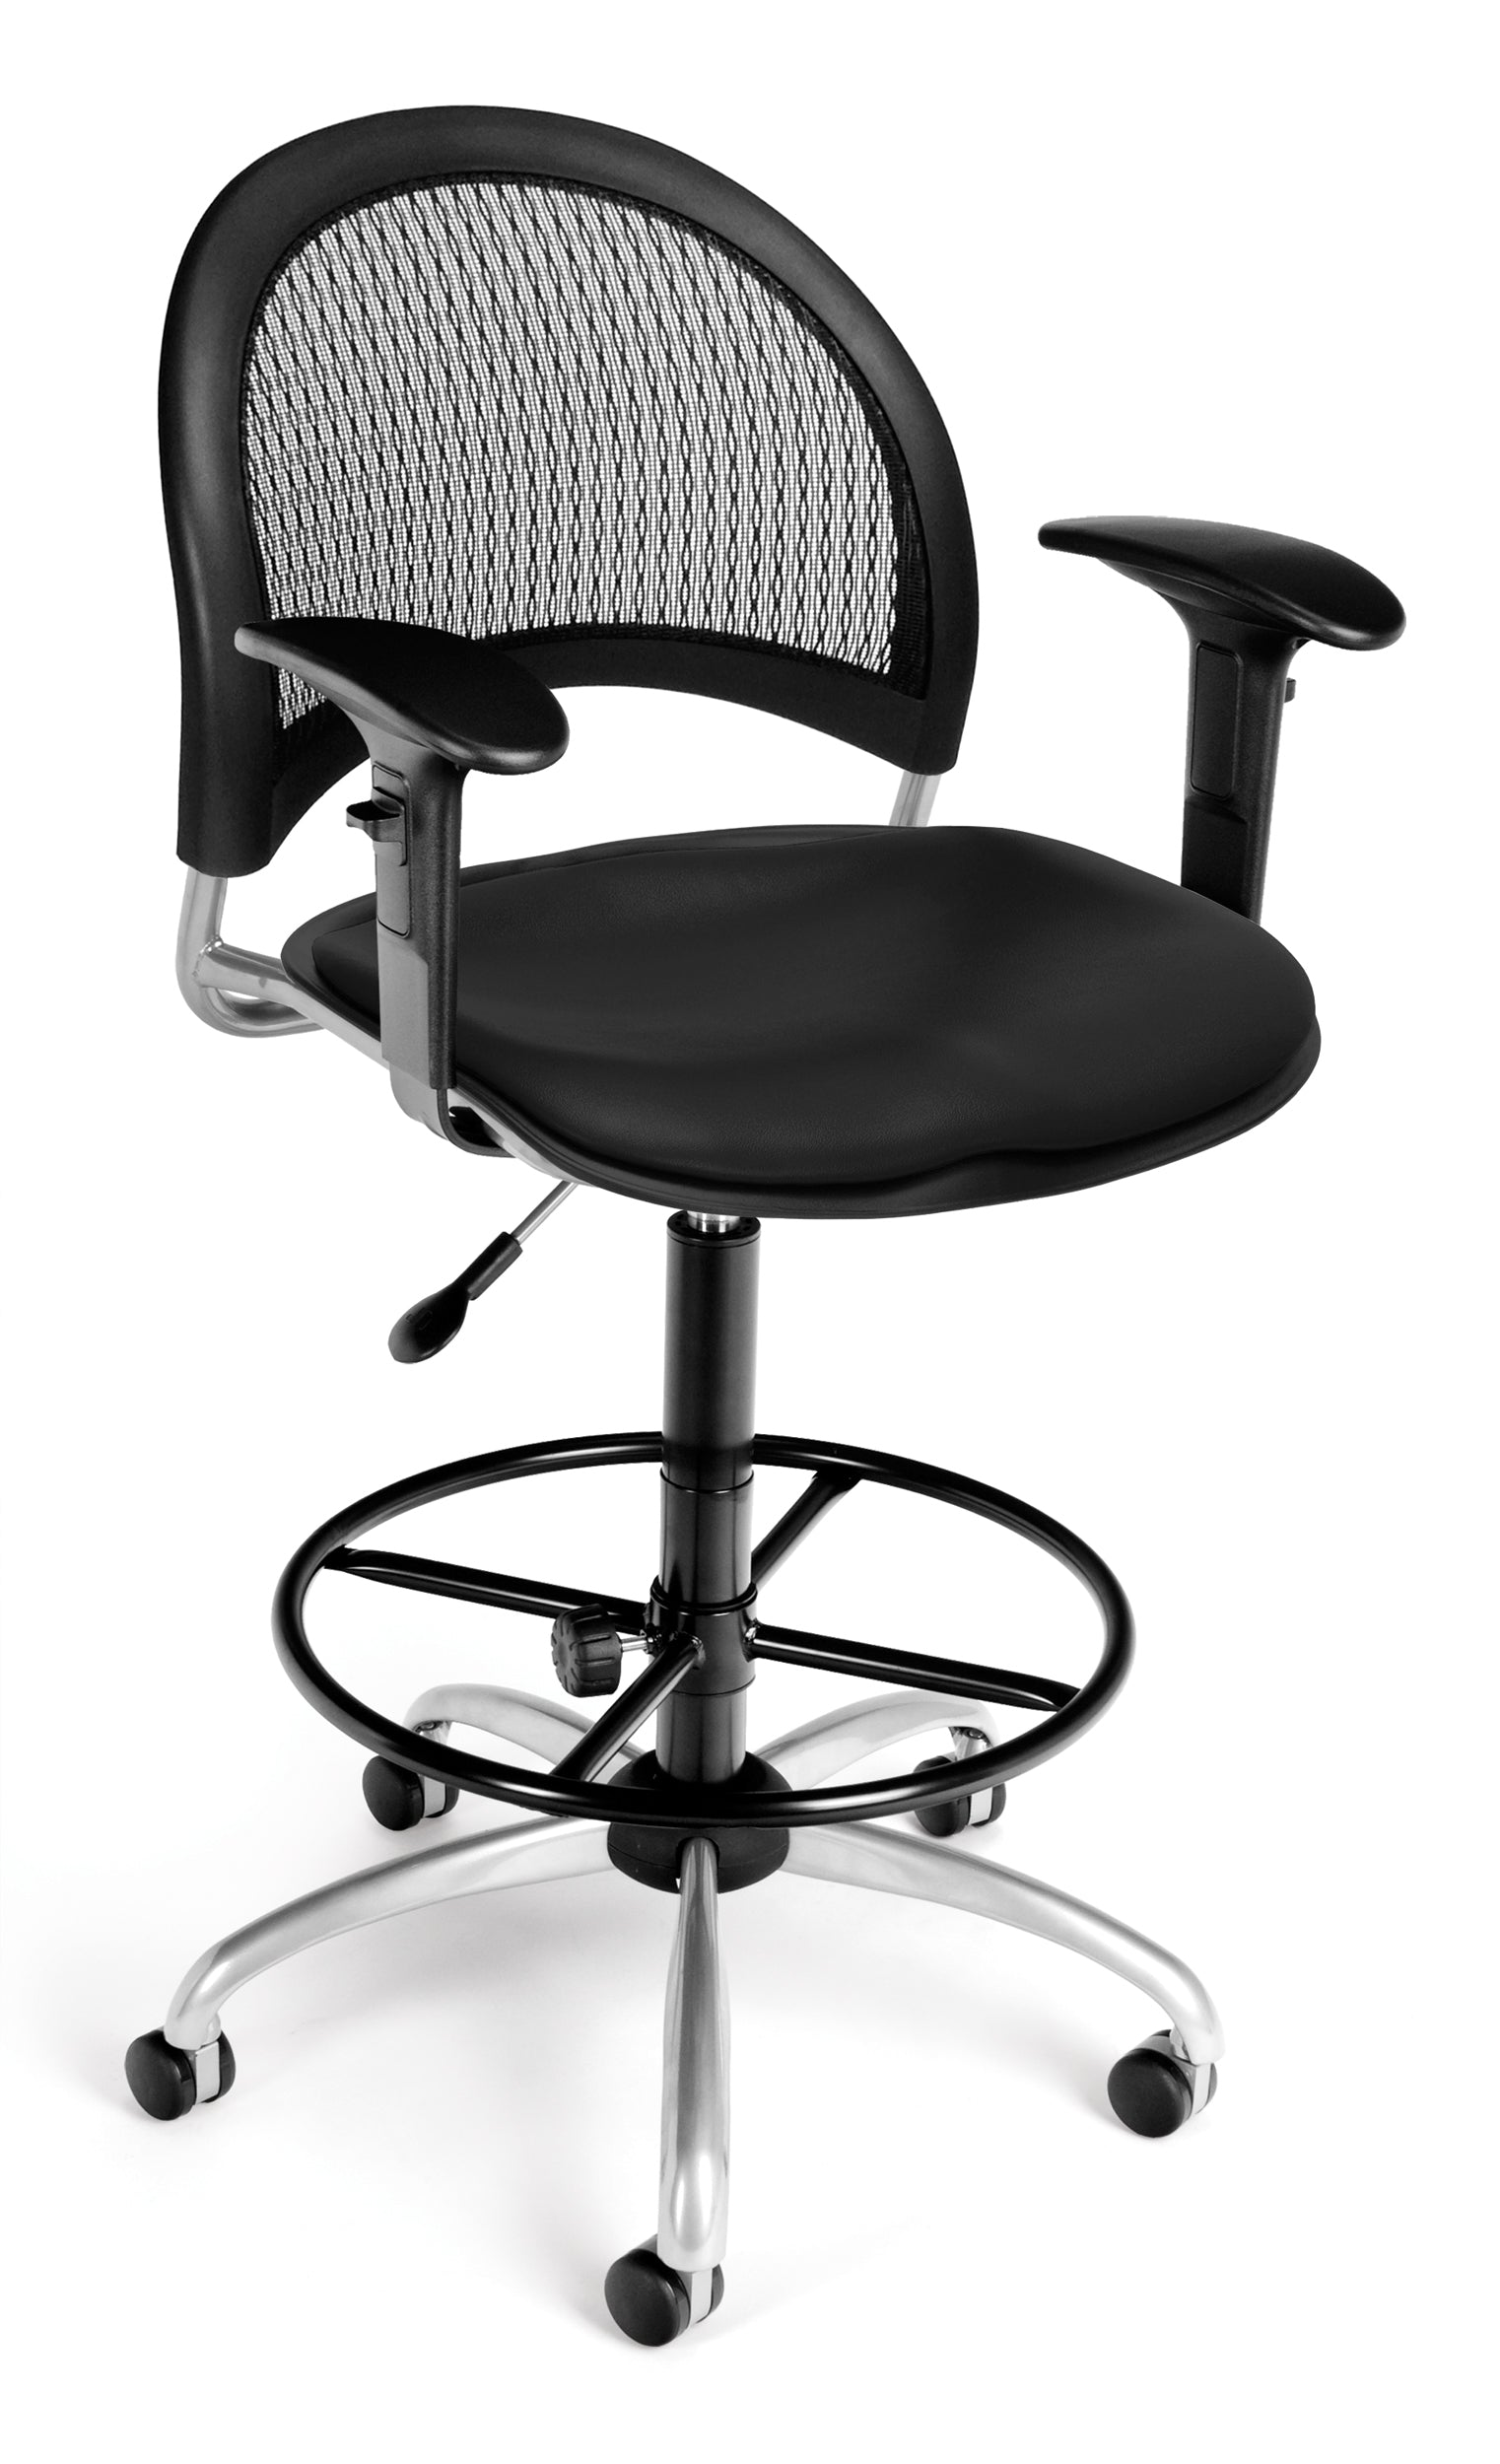 Model 336-V-AA3DK Moon Series Vinyl Drafting Kit Arms Swivel Chair